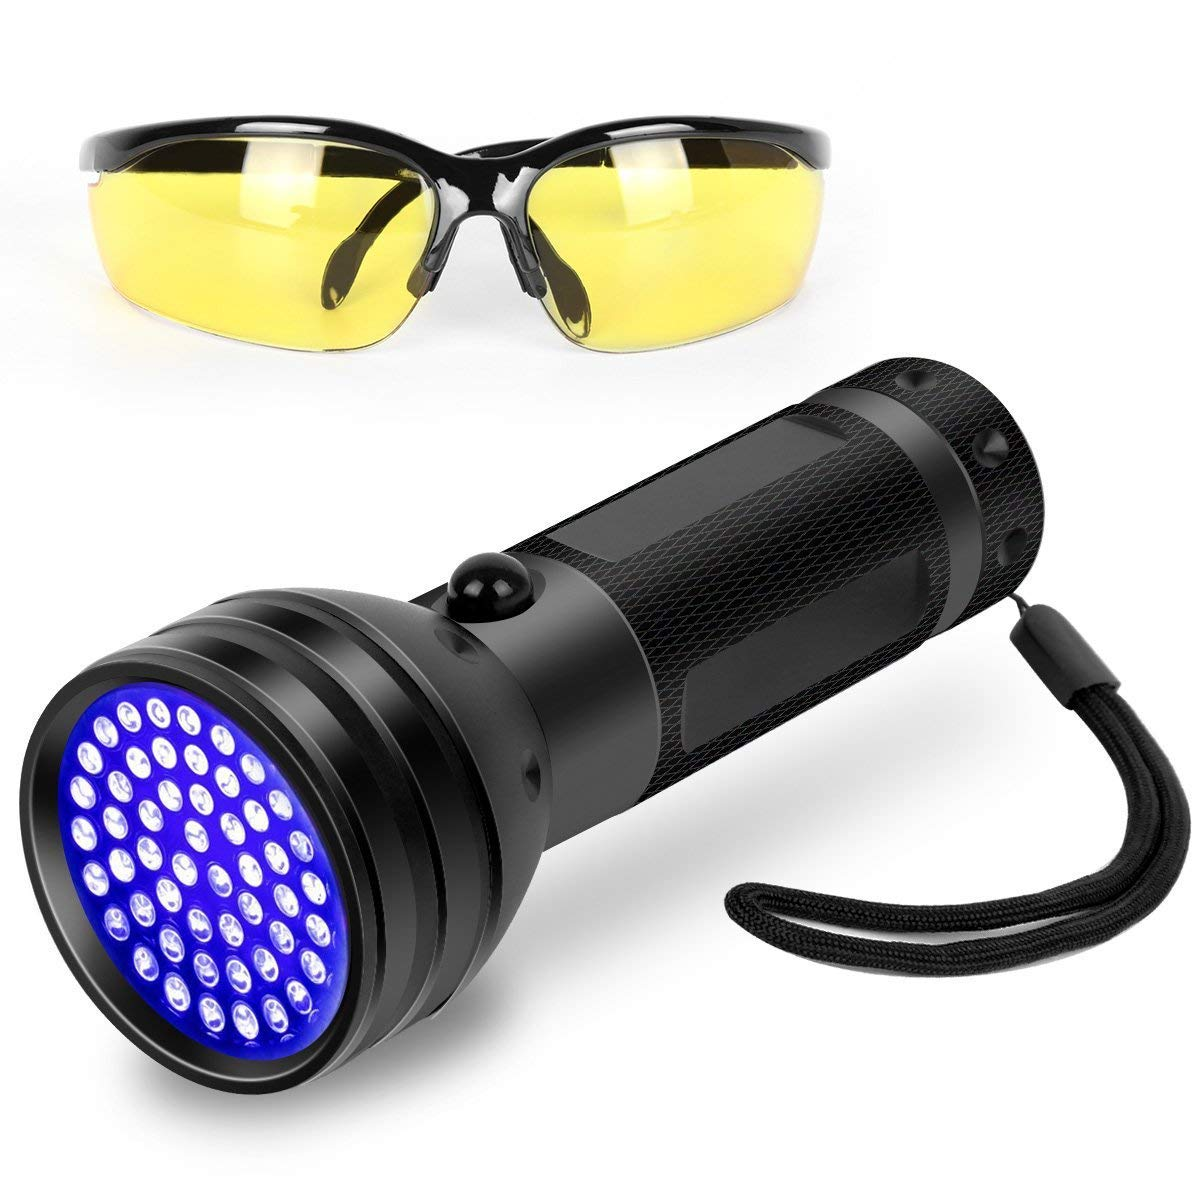 UV Flashlight Pet Urine Detector with Amber Glasses Great for Finding pet Stains High Powered 100 LED 395NM by LS